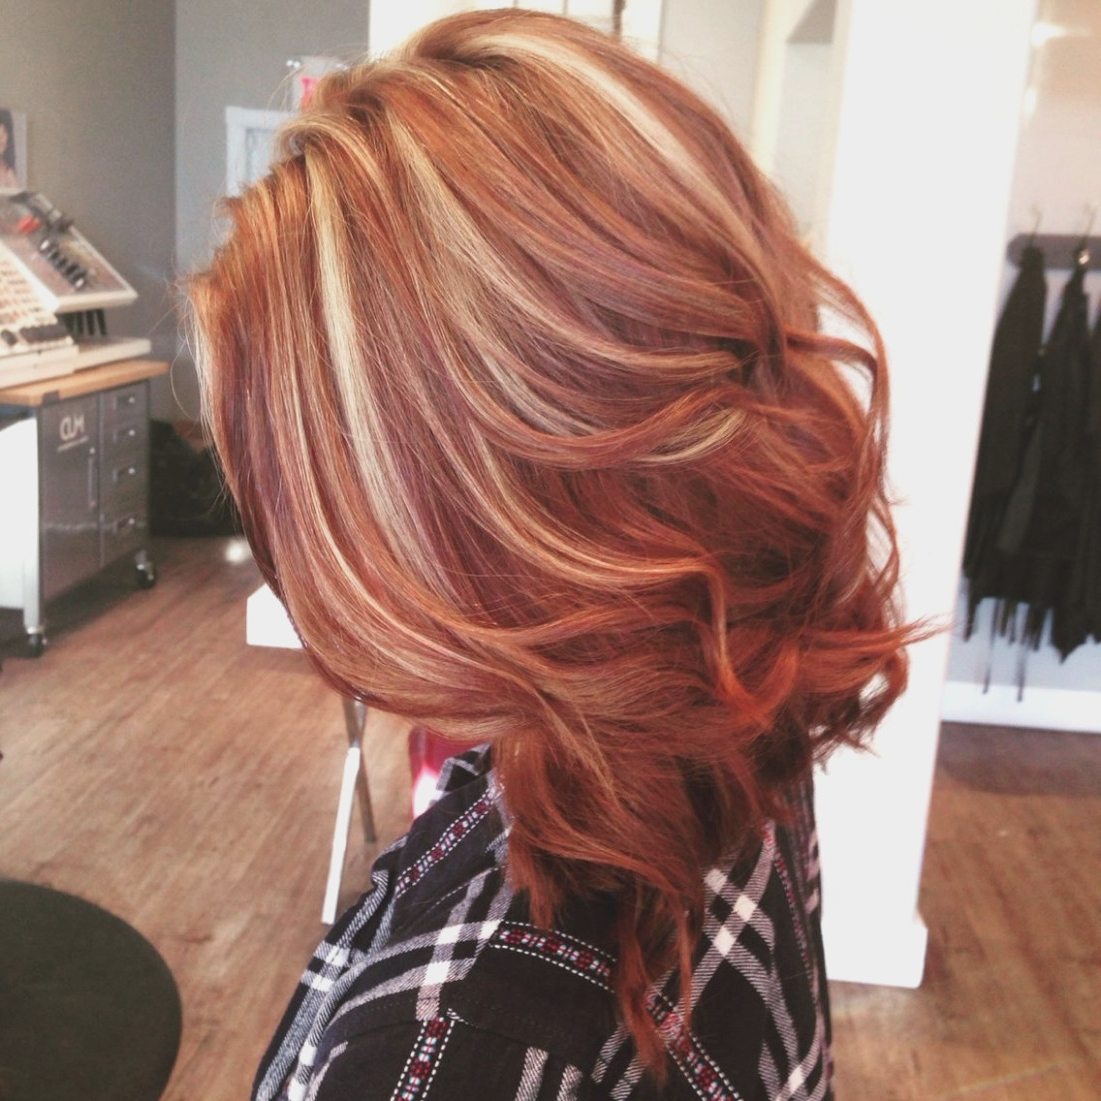 Most Recent Light Copper Hairstyles With Blonde Babylights Within Beautiful Copper Lob With Blonde Highlights. Hair. (View 10 of 20)